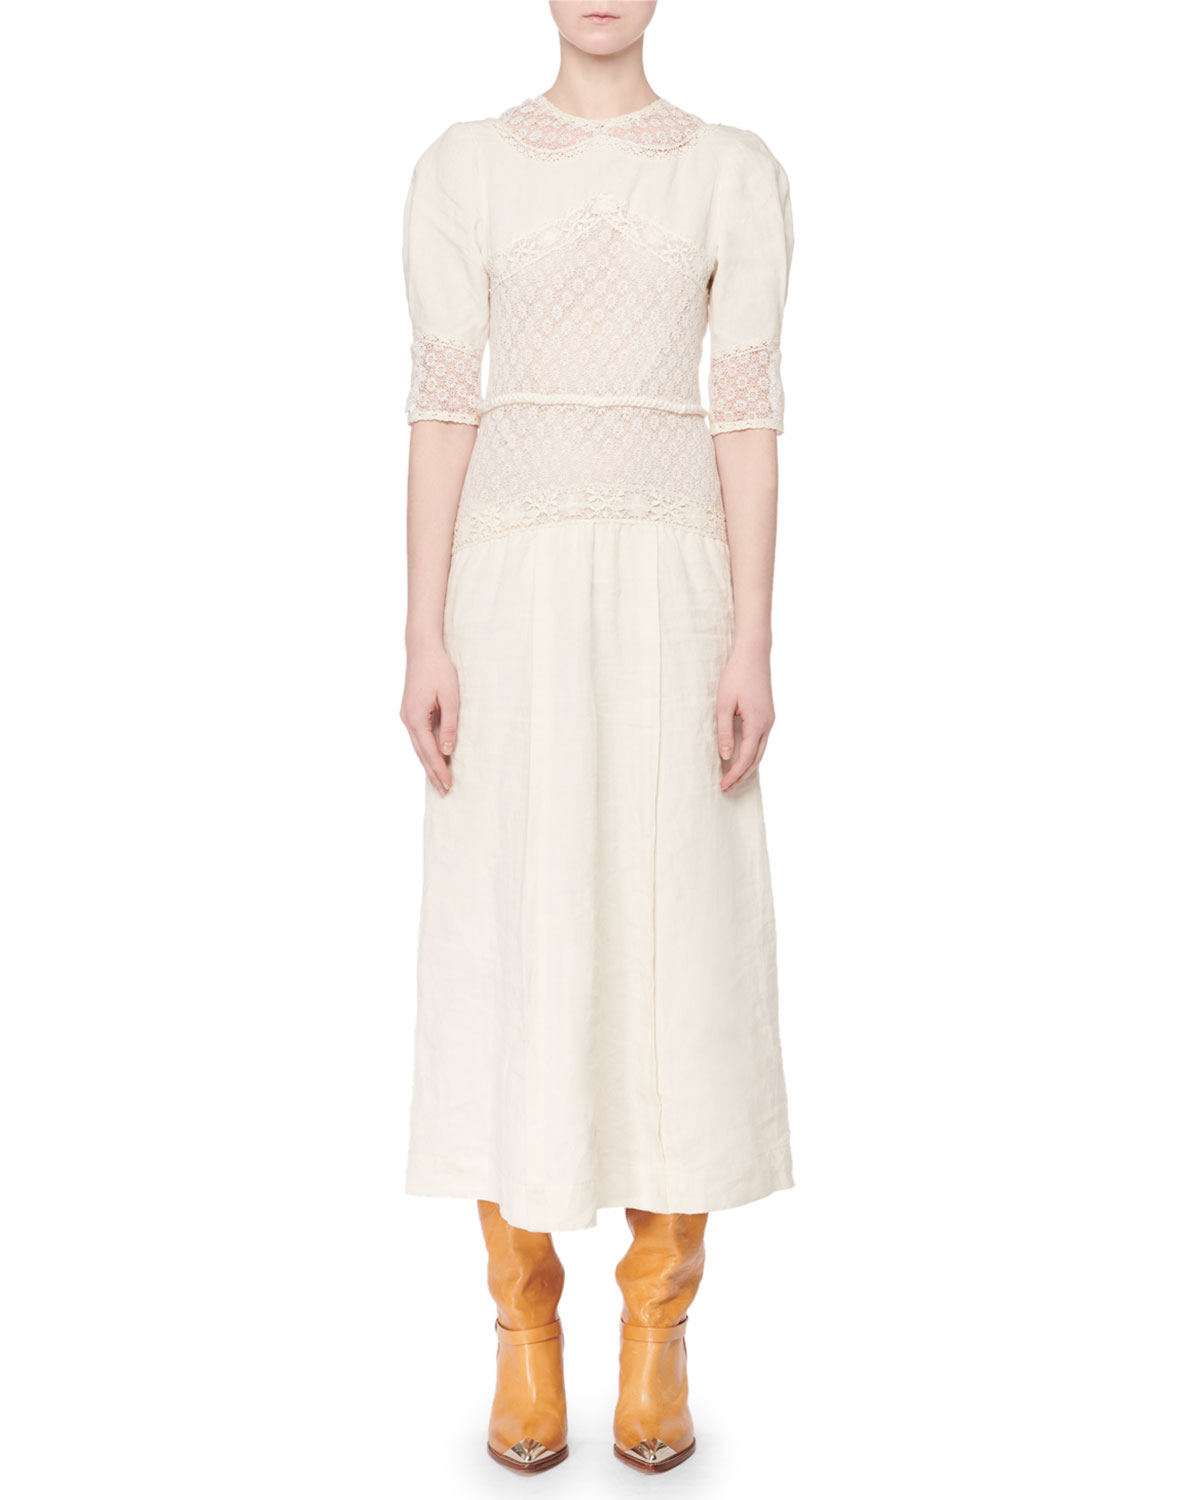 5cc99d58c11d4 Isabel Marant Lydie Elbow-Sleeve Linen Lace A-Line Long Dress ...